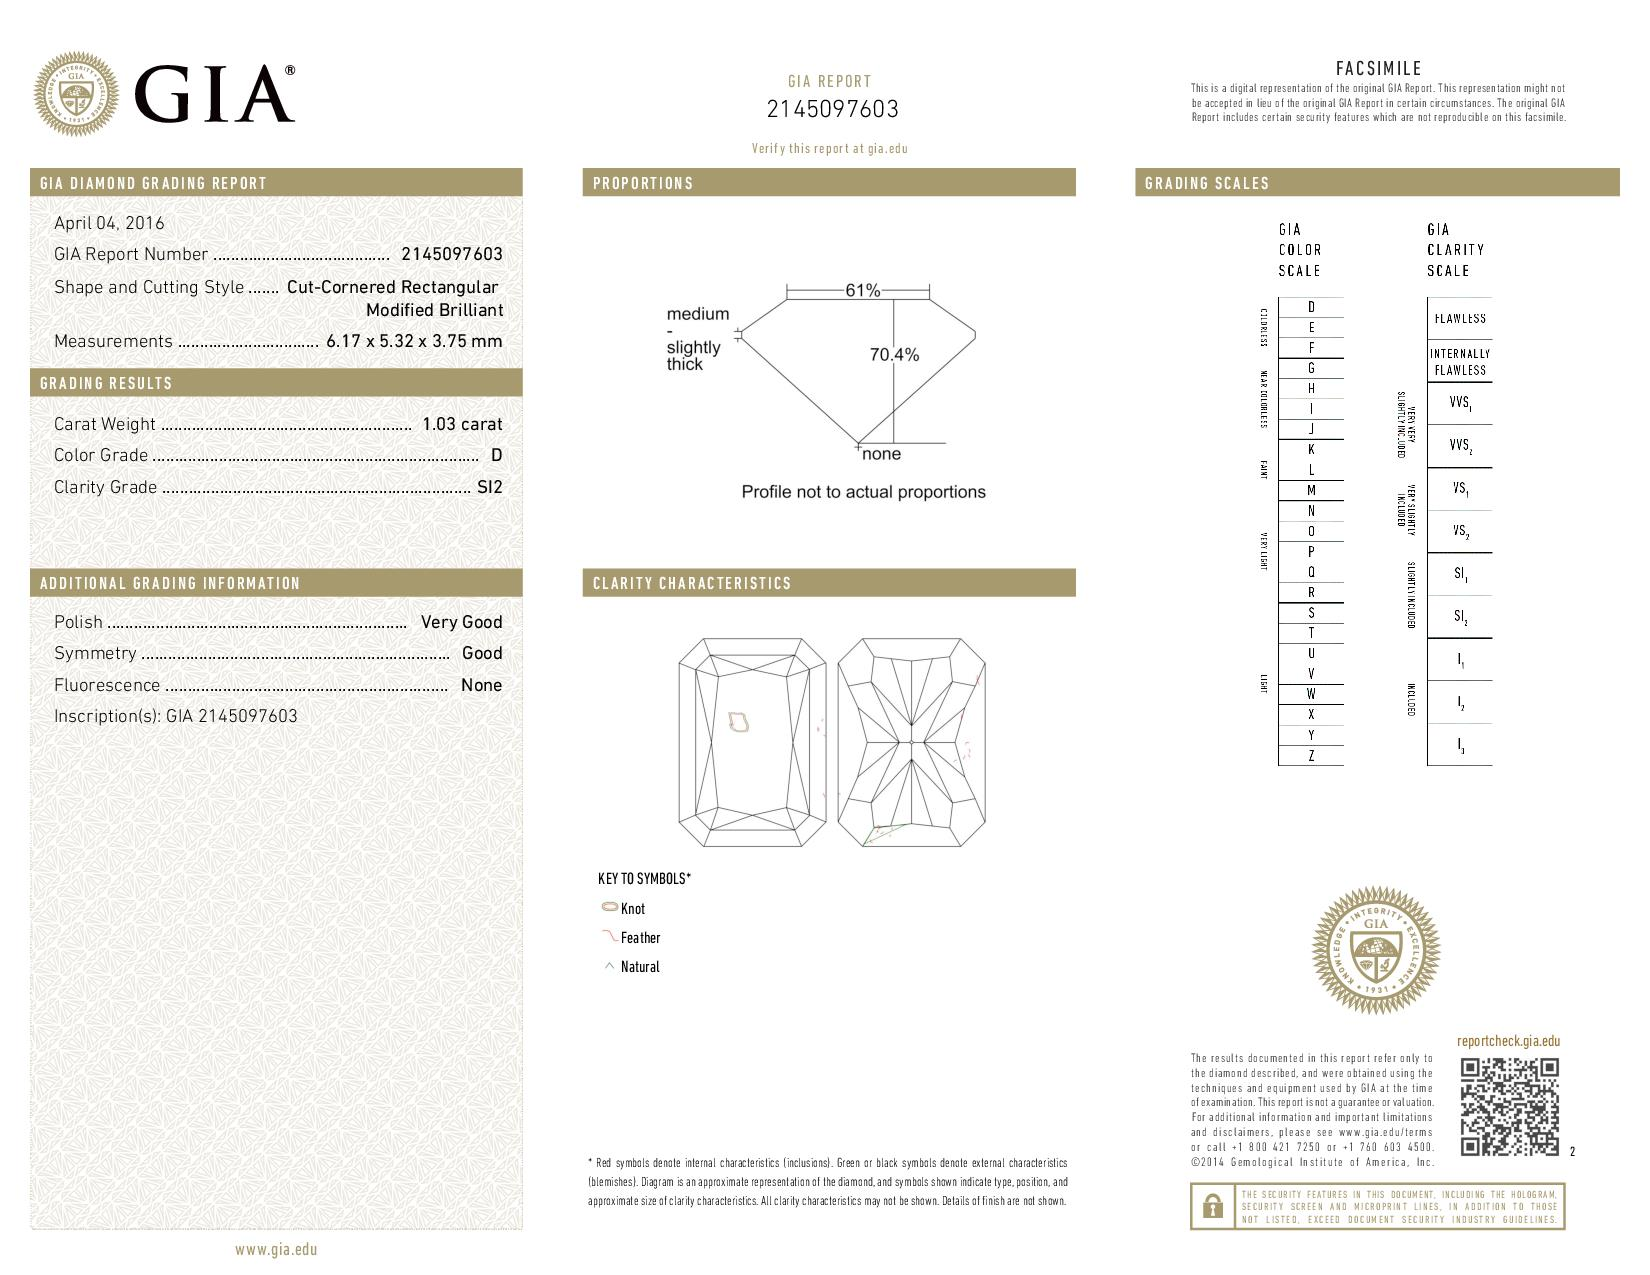 This is a 1.03 carat radiant shape, D color, SI2 clarity natural diamond accompanied by a GIA grading report.